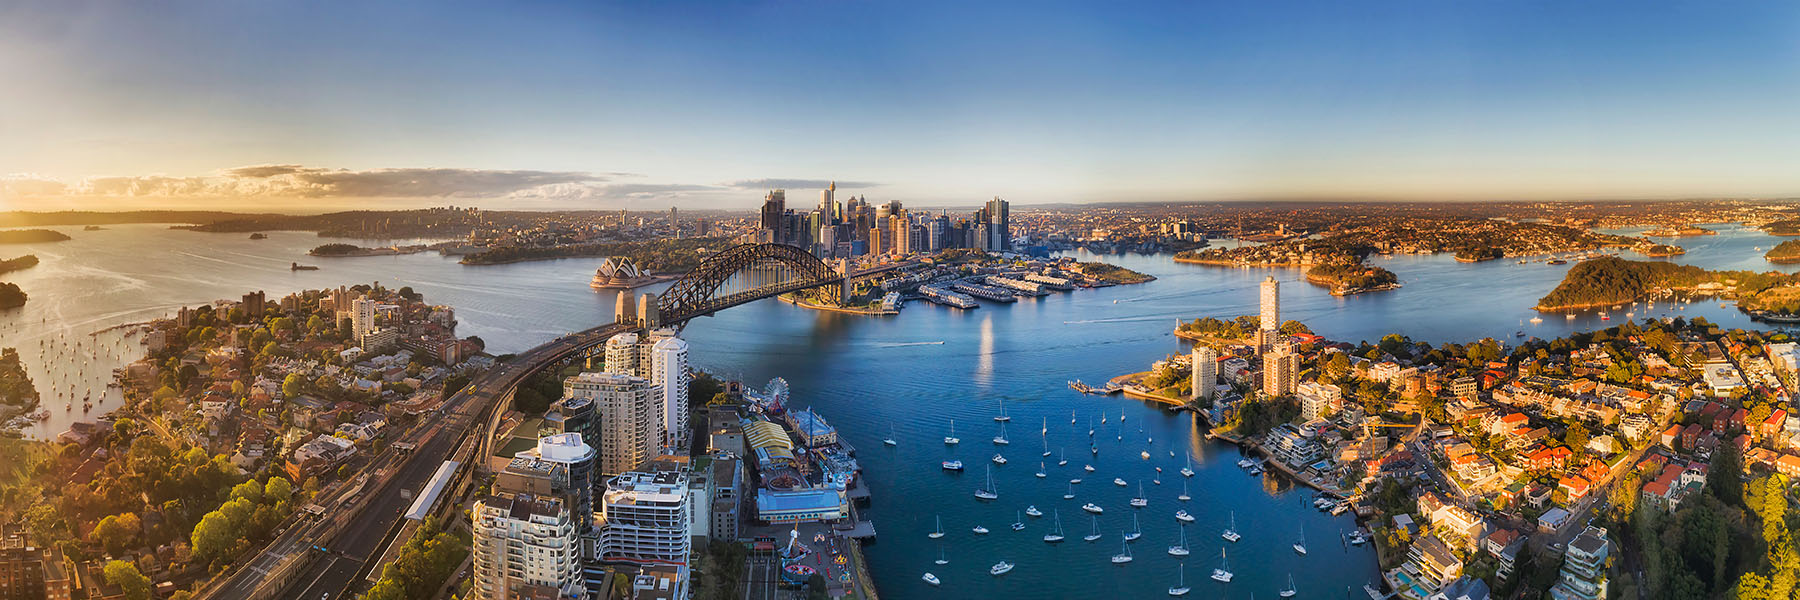 Australians working together to harness zero emissions opportunities